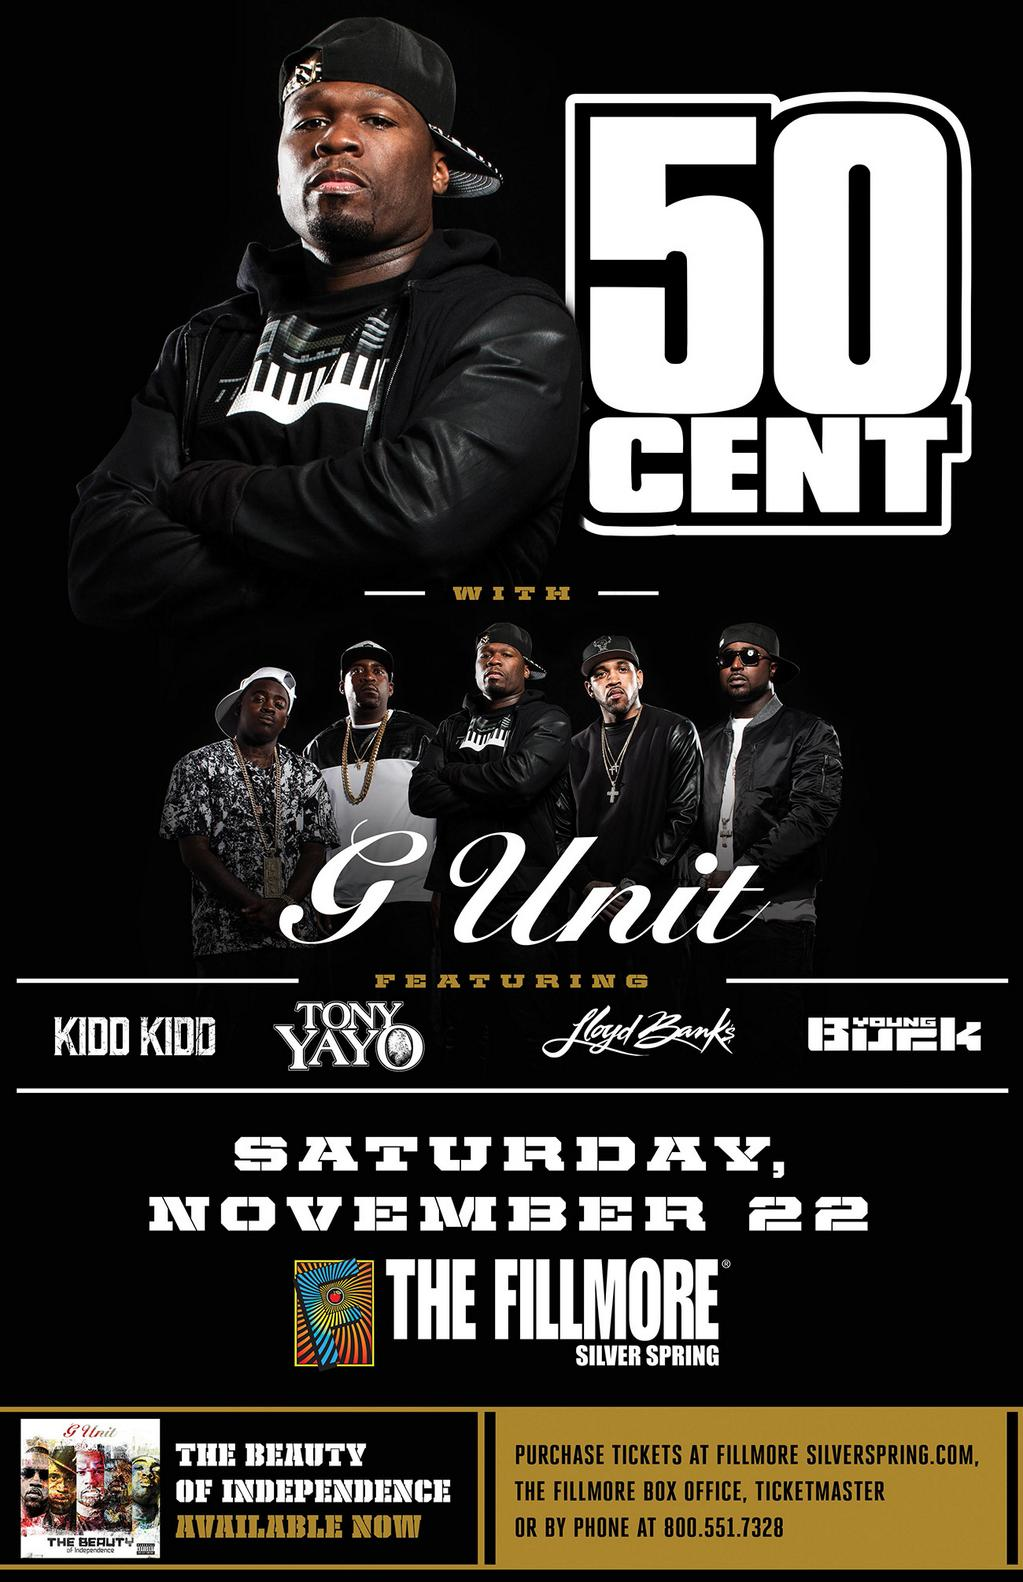 RT @thisis50: Silver Spring, MD!! Don't miss the Unit in your town Nov 22nd! Tickets: http://t.co/7YiKWUpTLC http://t.co/4XYRPbYXgD